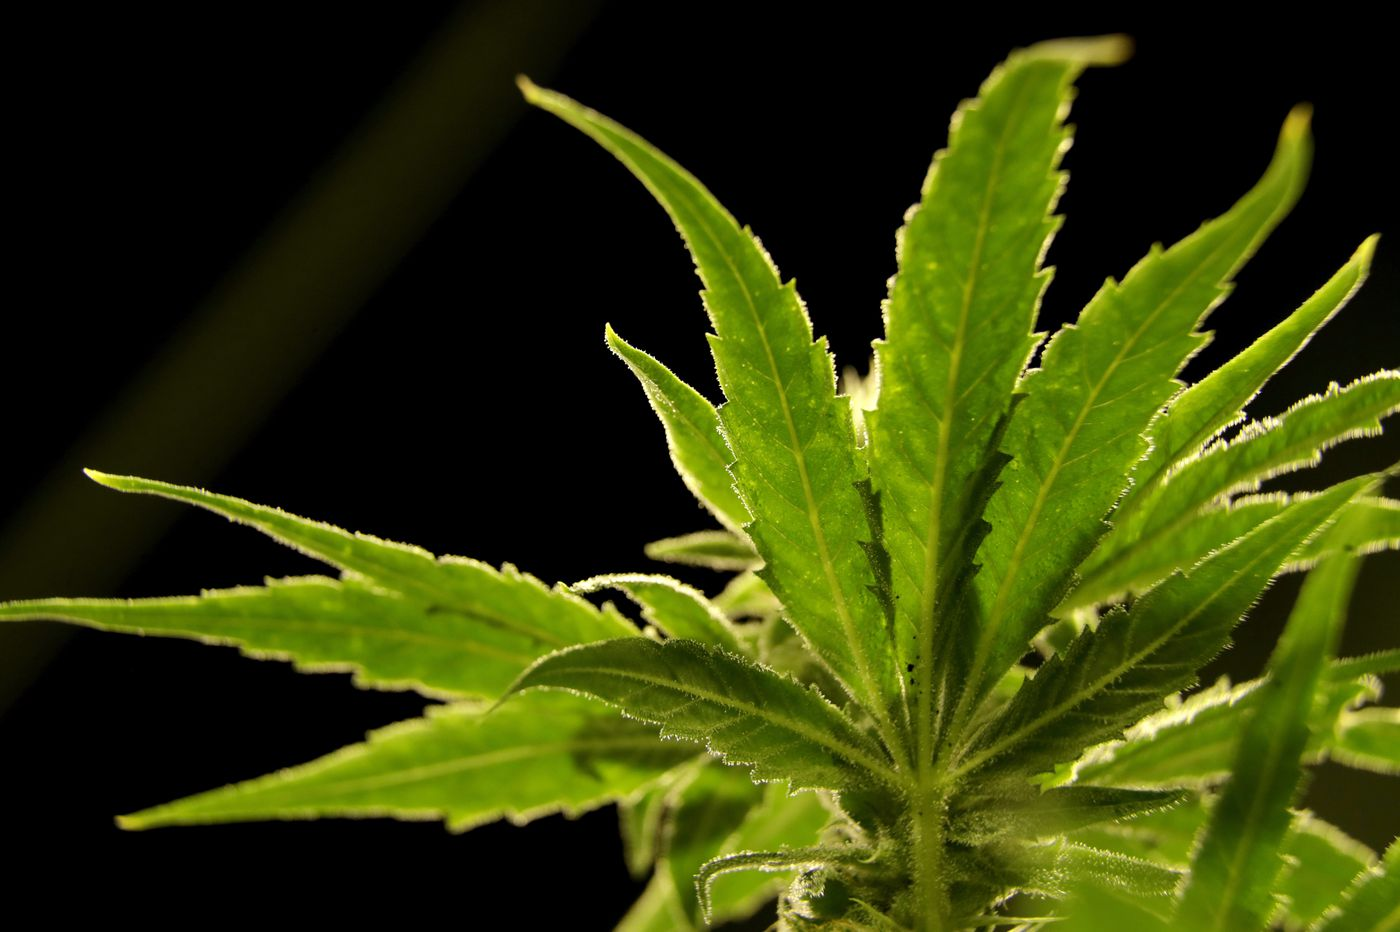 King of Prussia offers more than high fashion: Its 3rd medical marijuana shop opens next week